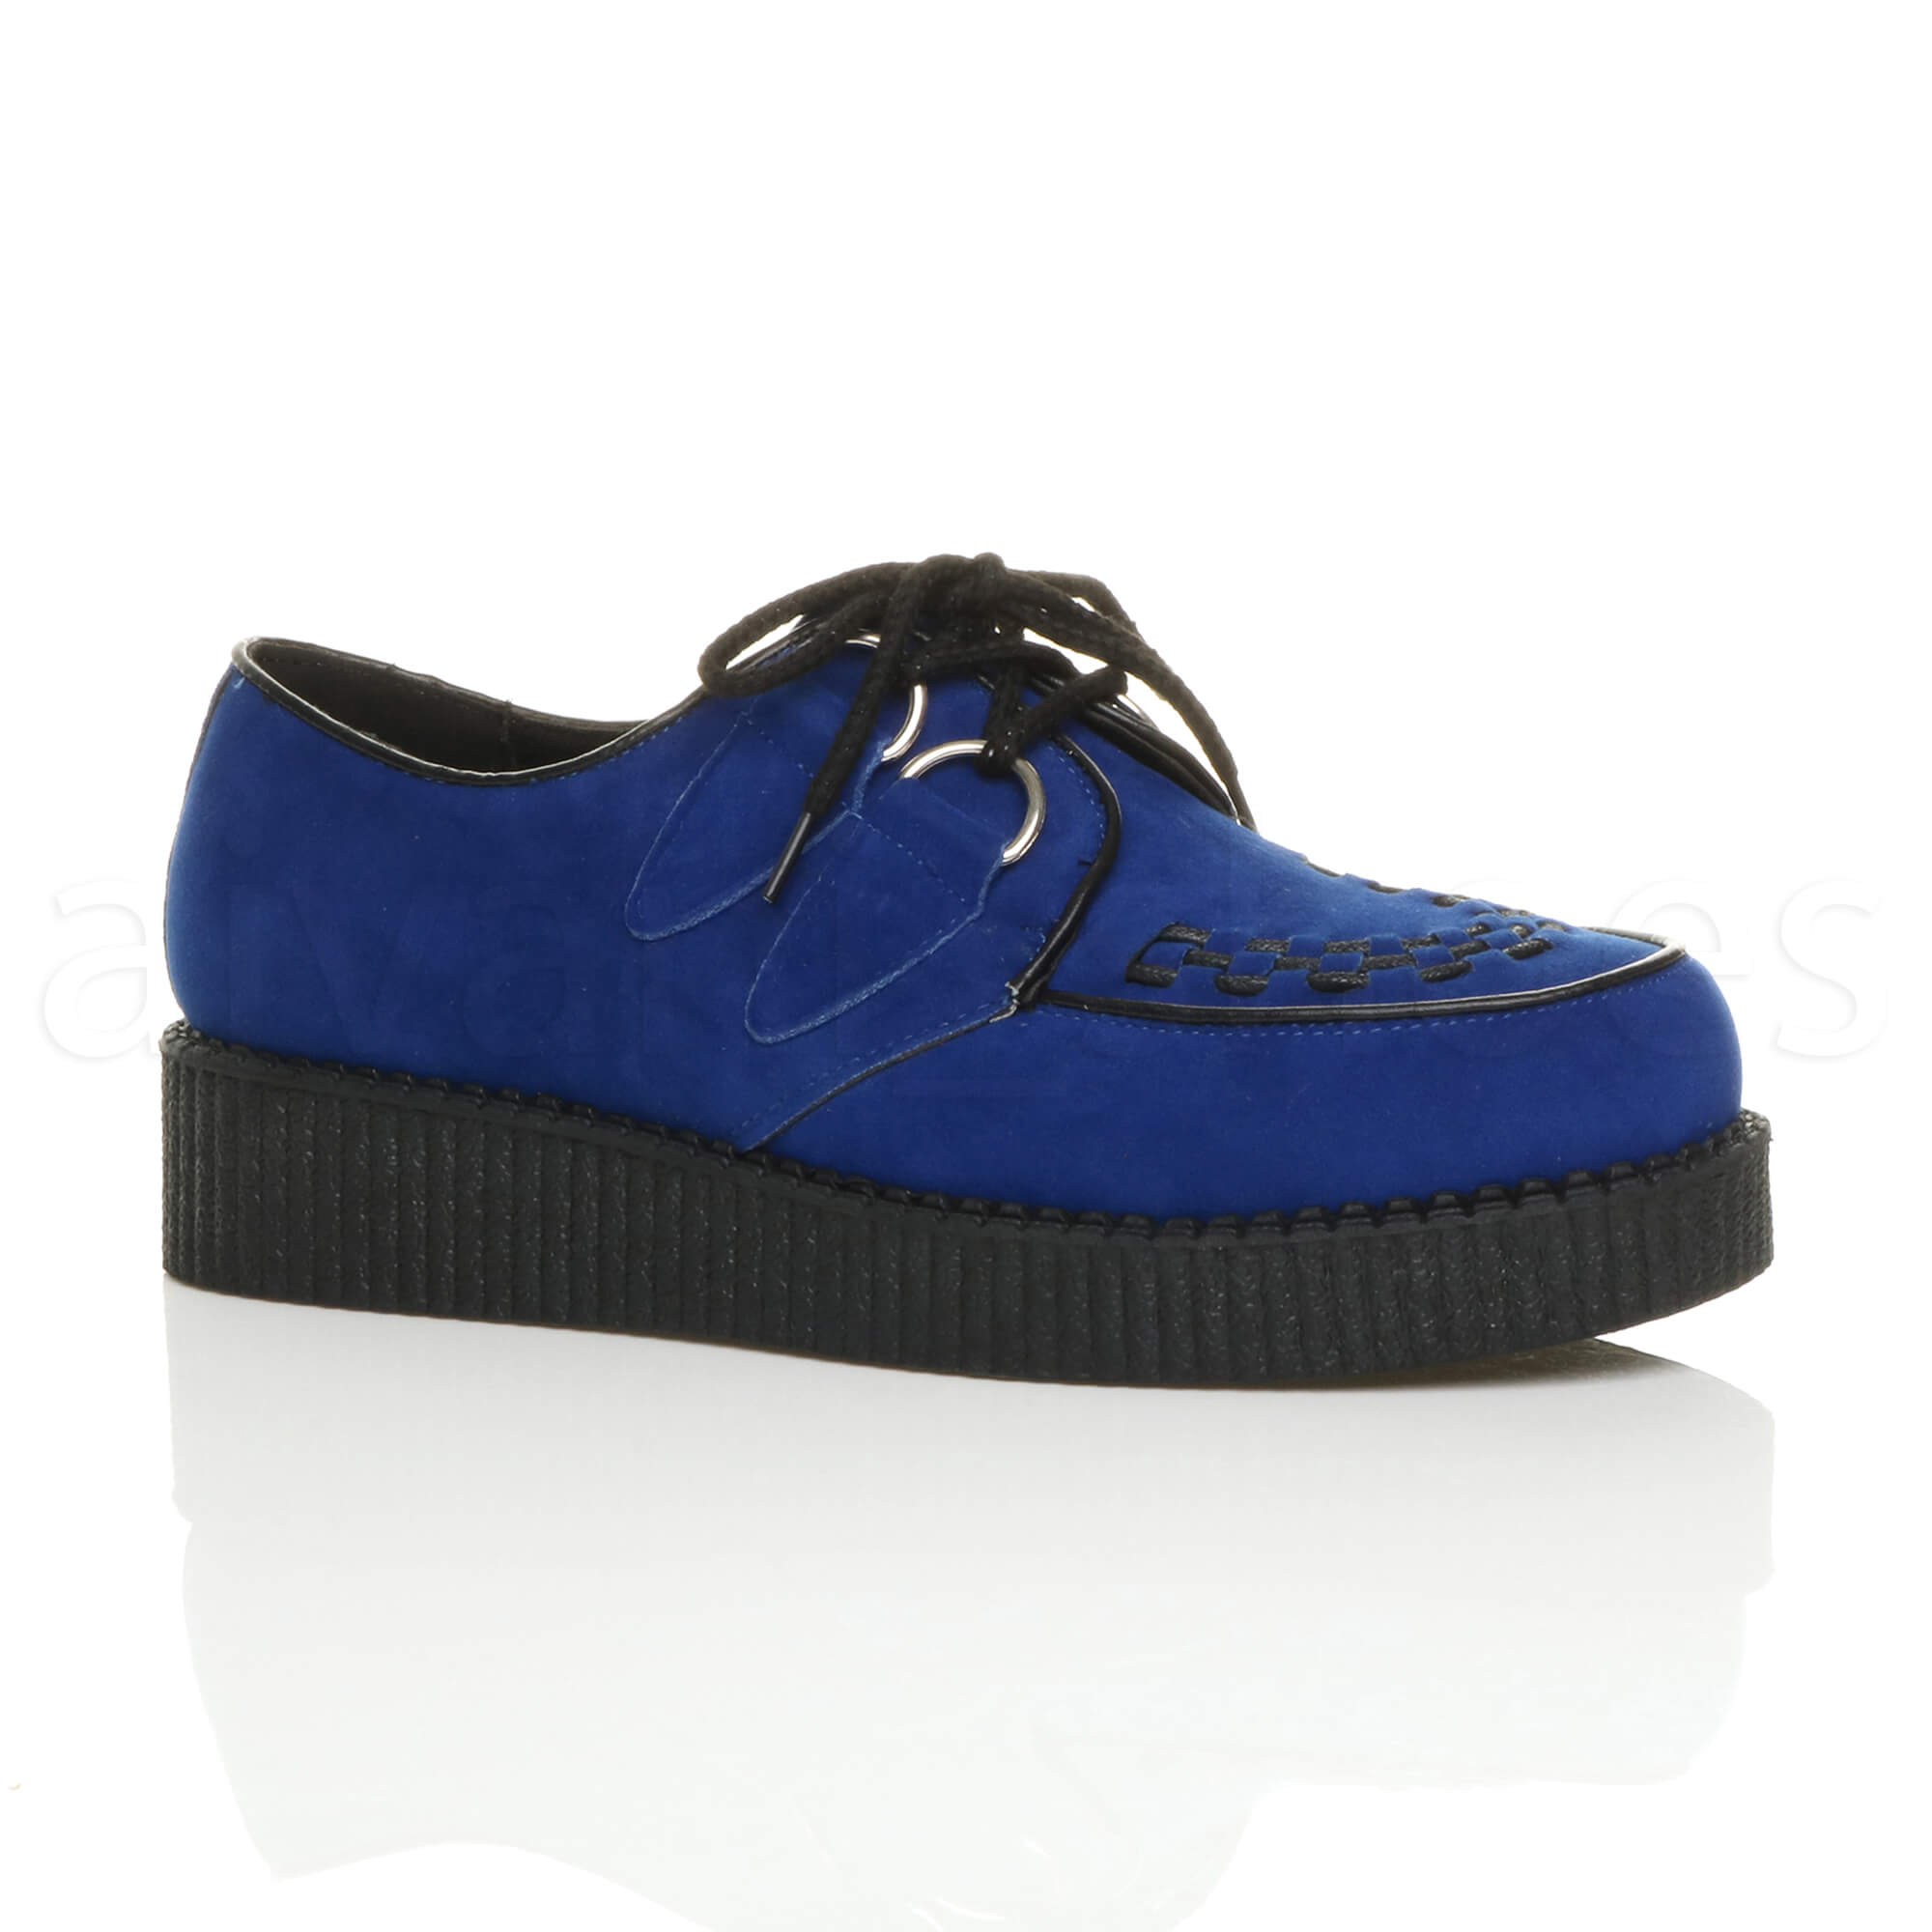 Blue Suede Wedge Shoes Size